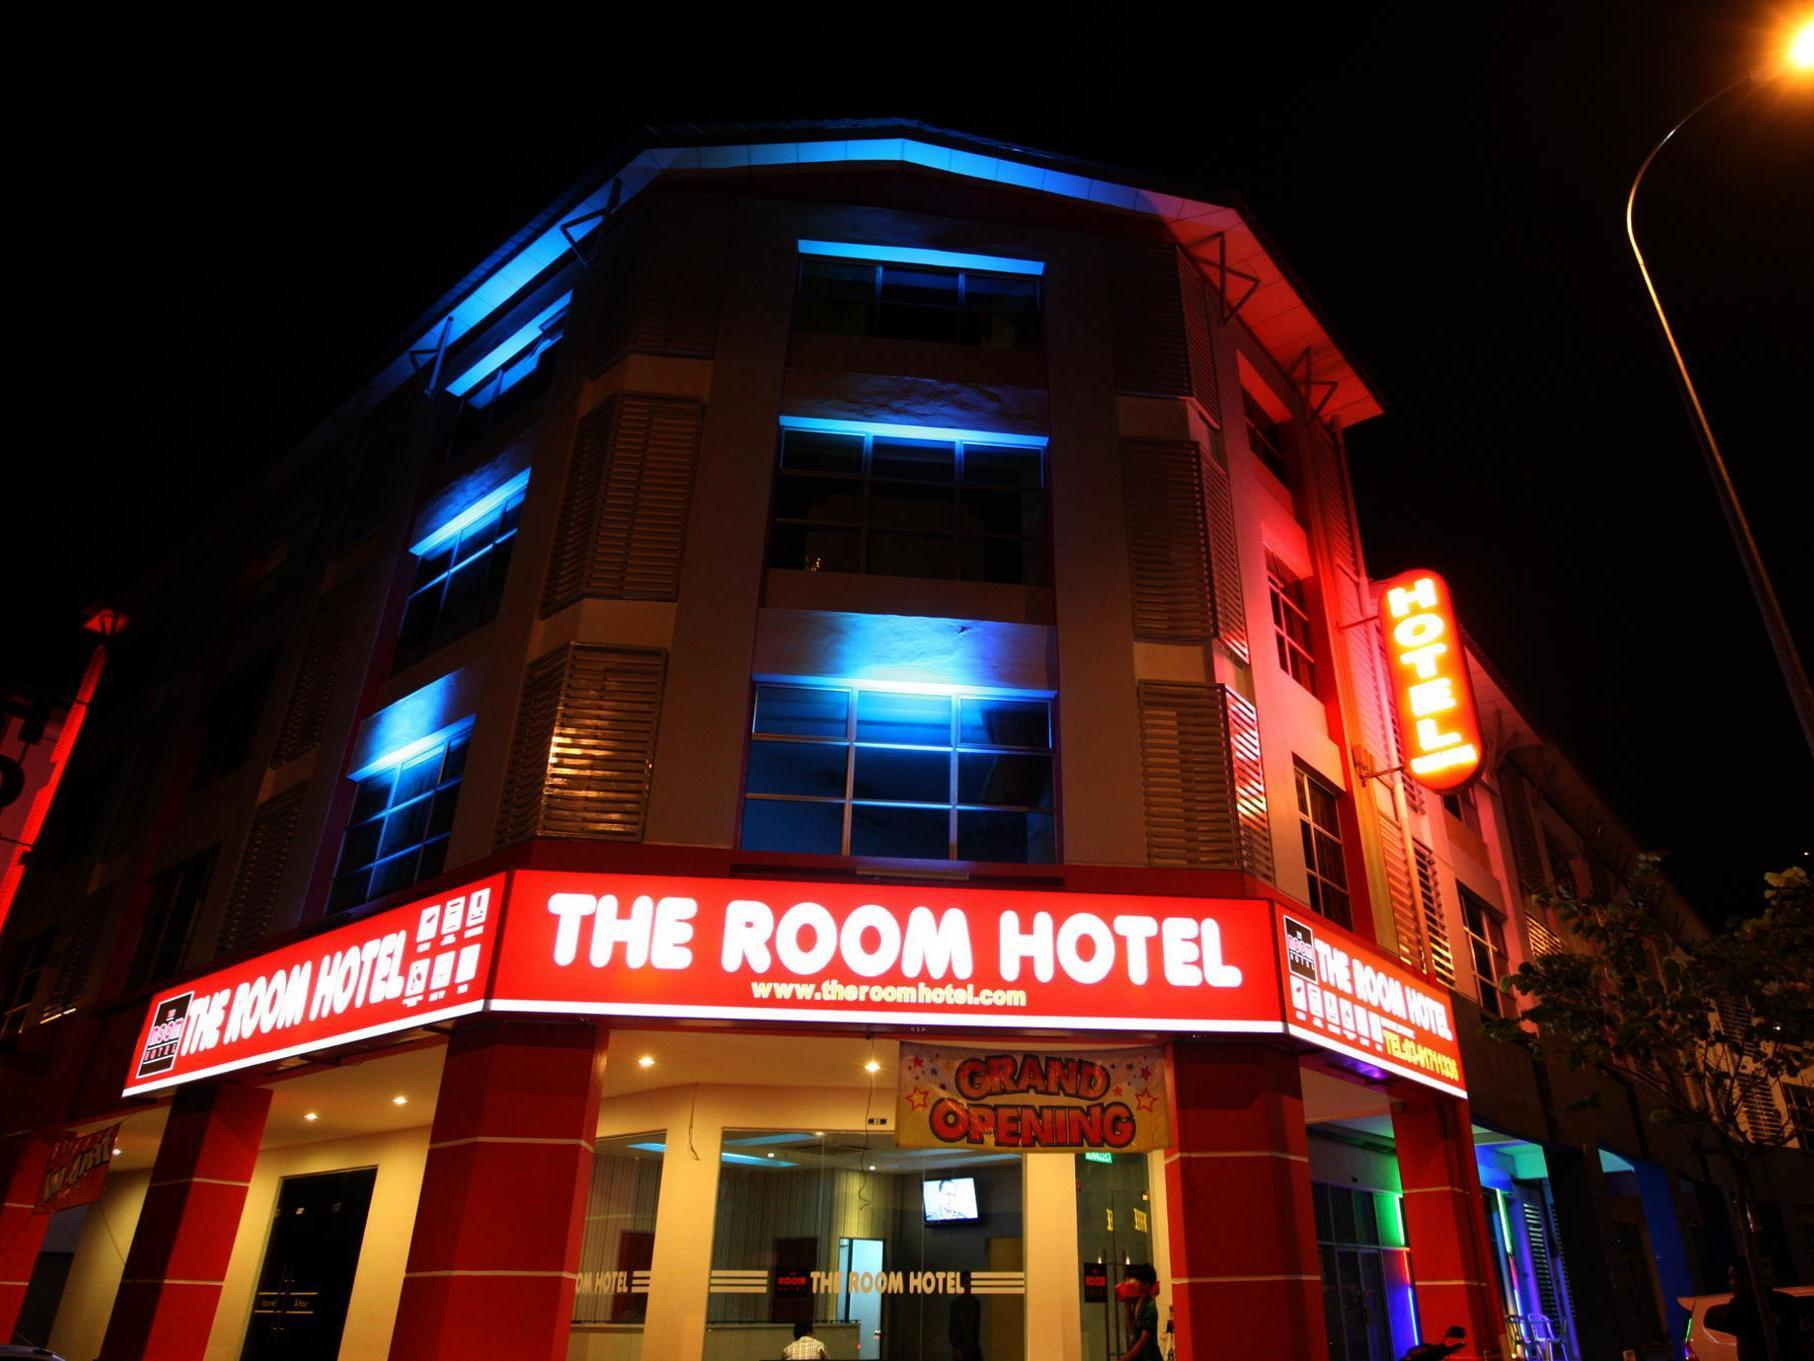 The Room Hotel